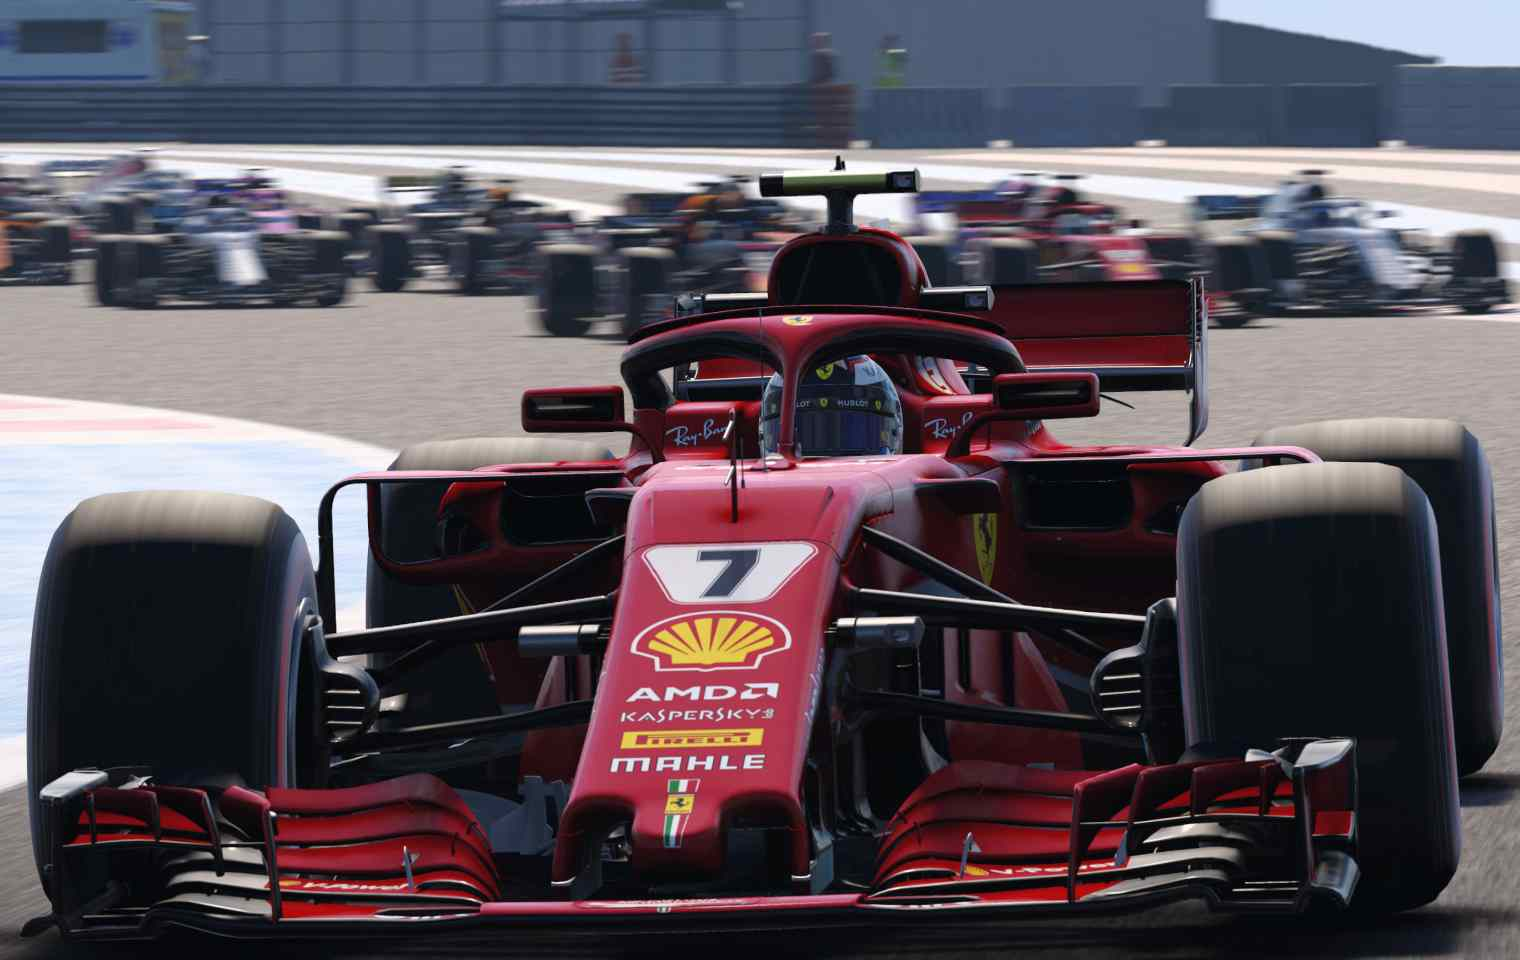 f1 2018 im test mit vollgas auf die pole position ps4 xbox one. Black Bedroom Furniture Sets. Home Design Ideas